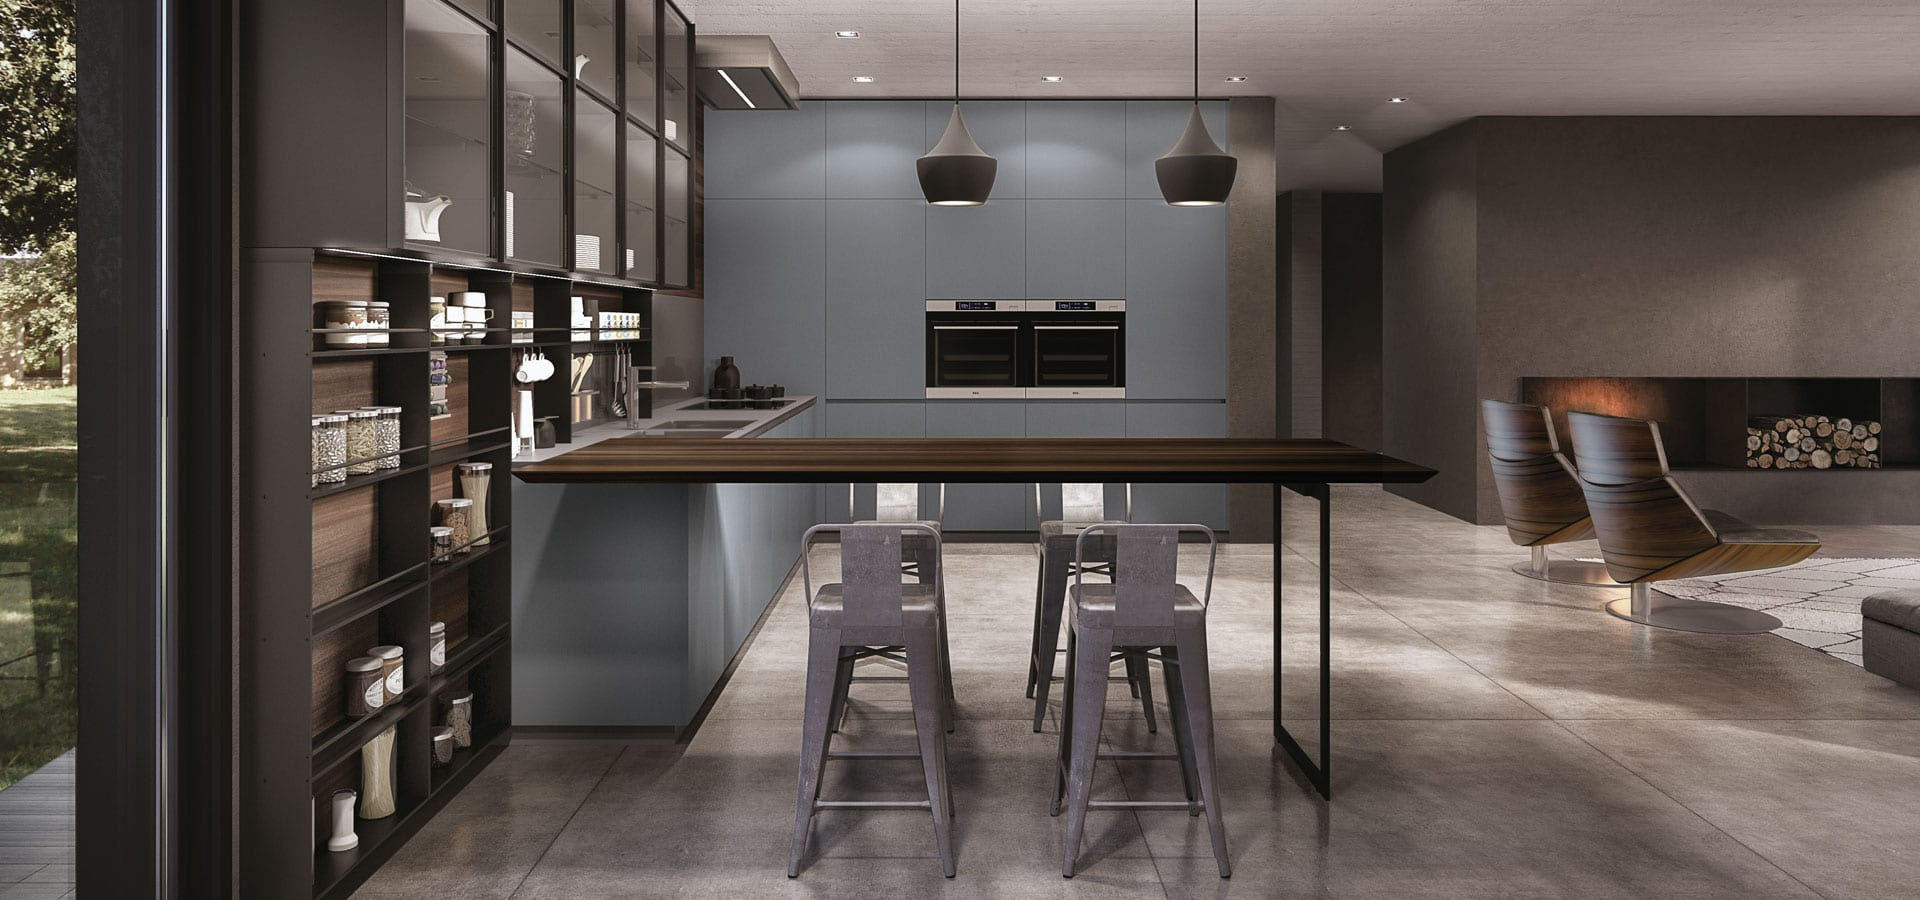 Modern European kitchen